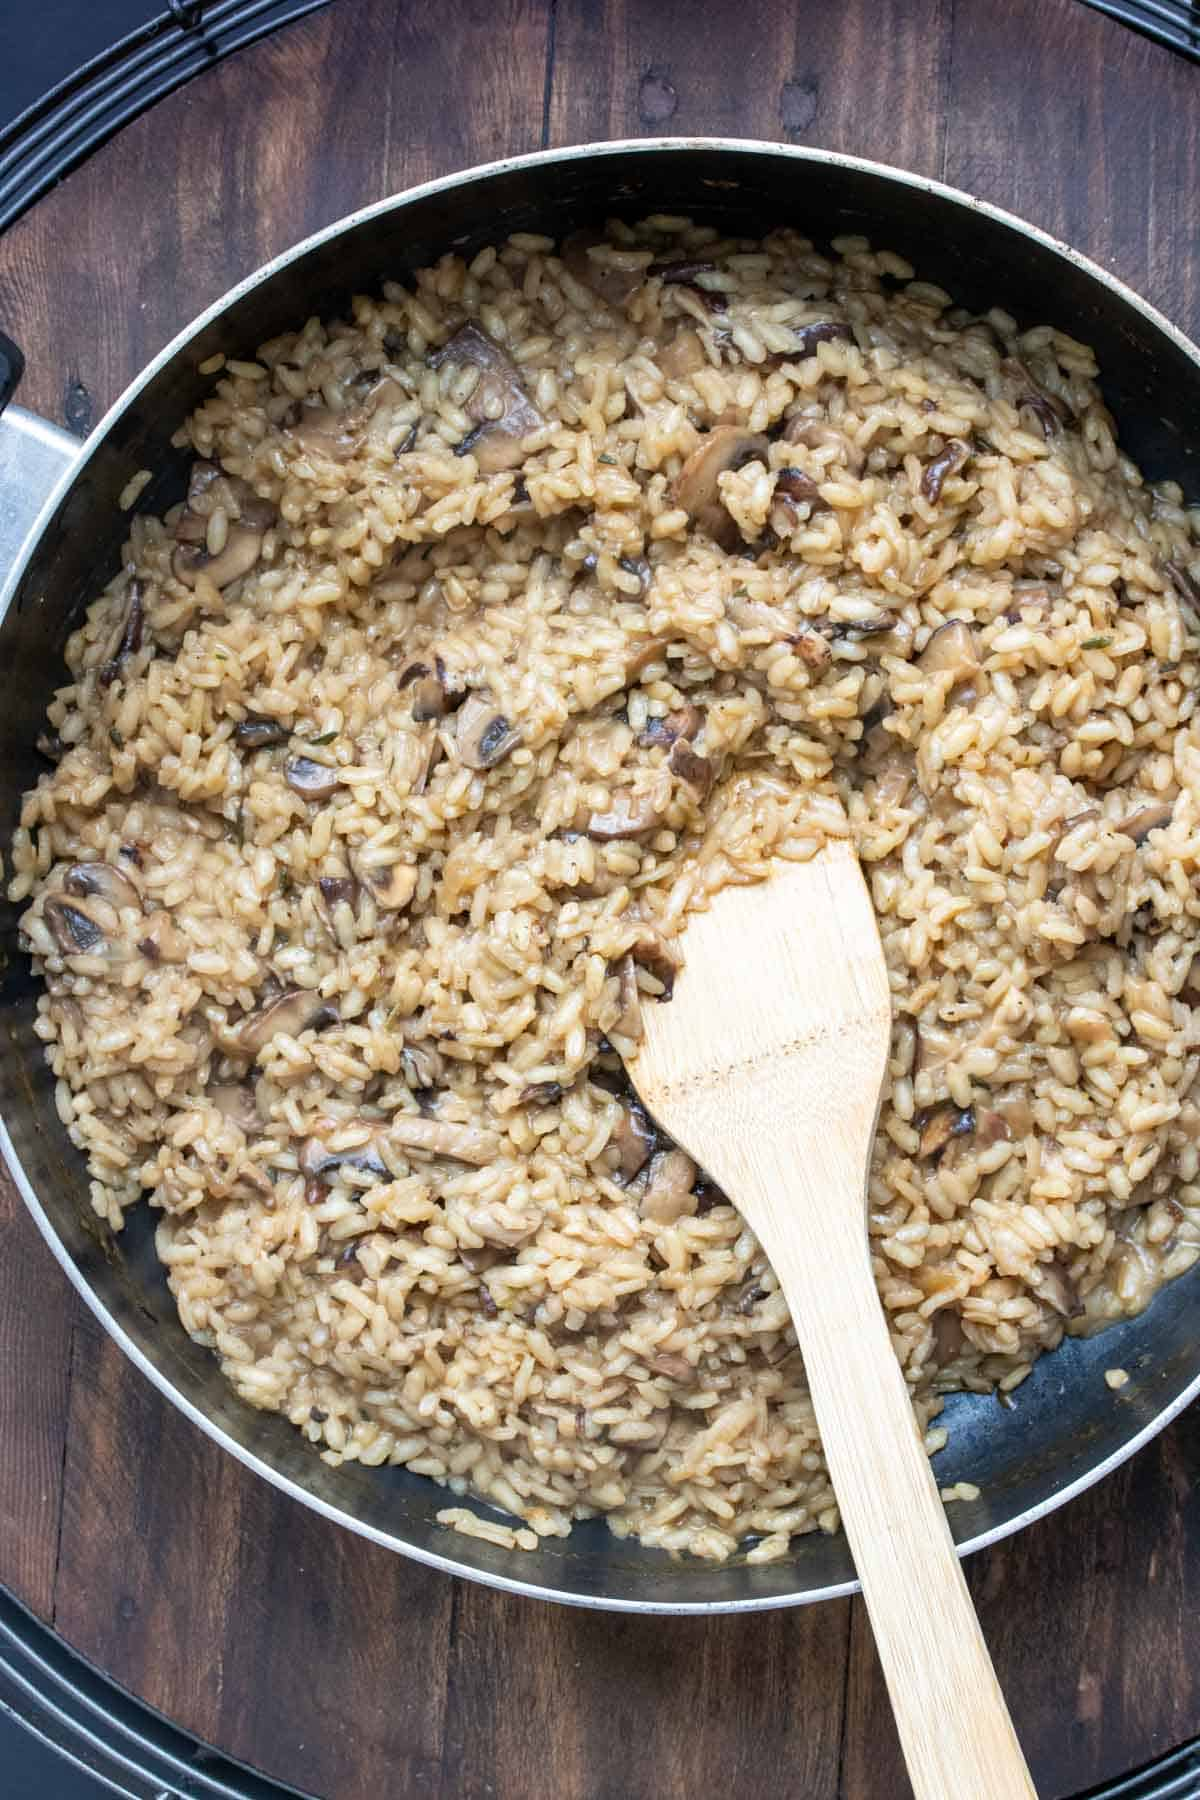 Pan with mushroom risotto cooking inside being stirred by a wooden spatula